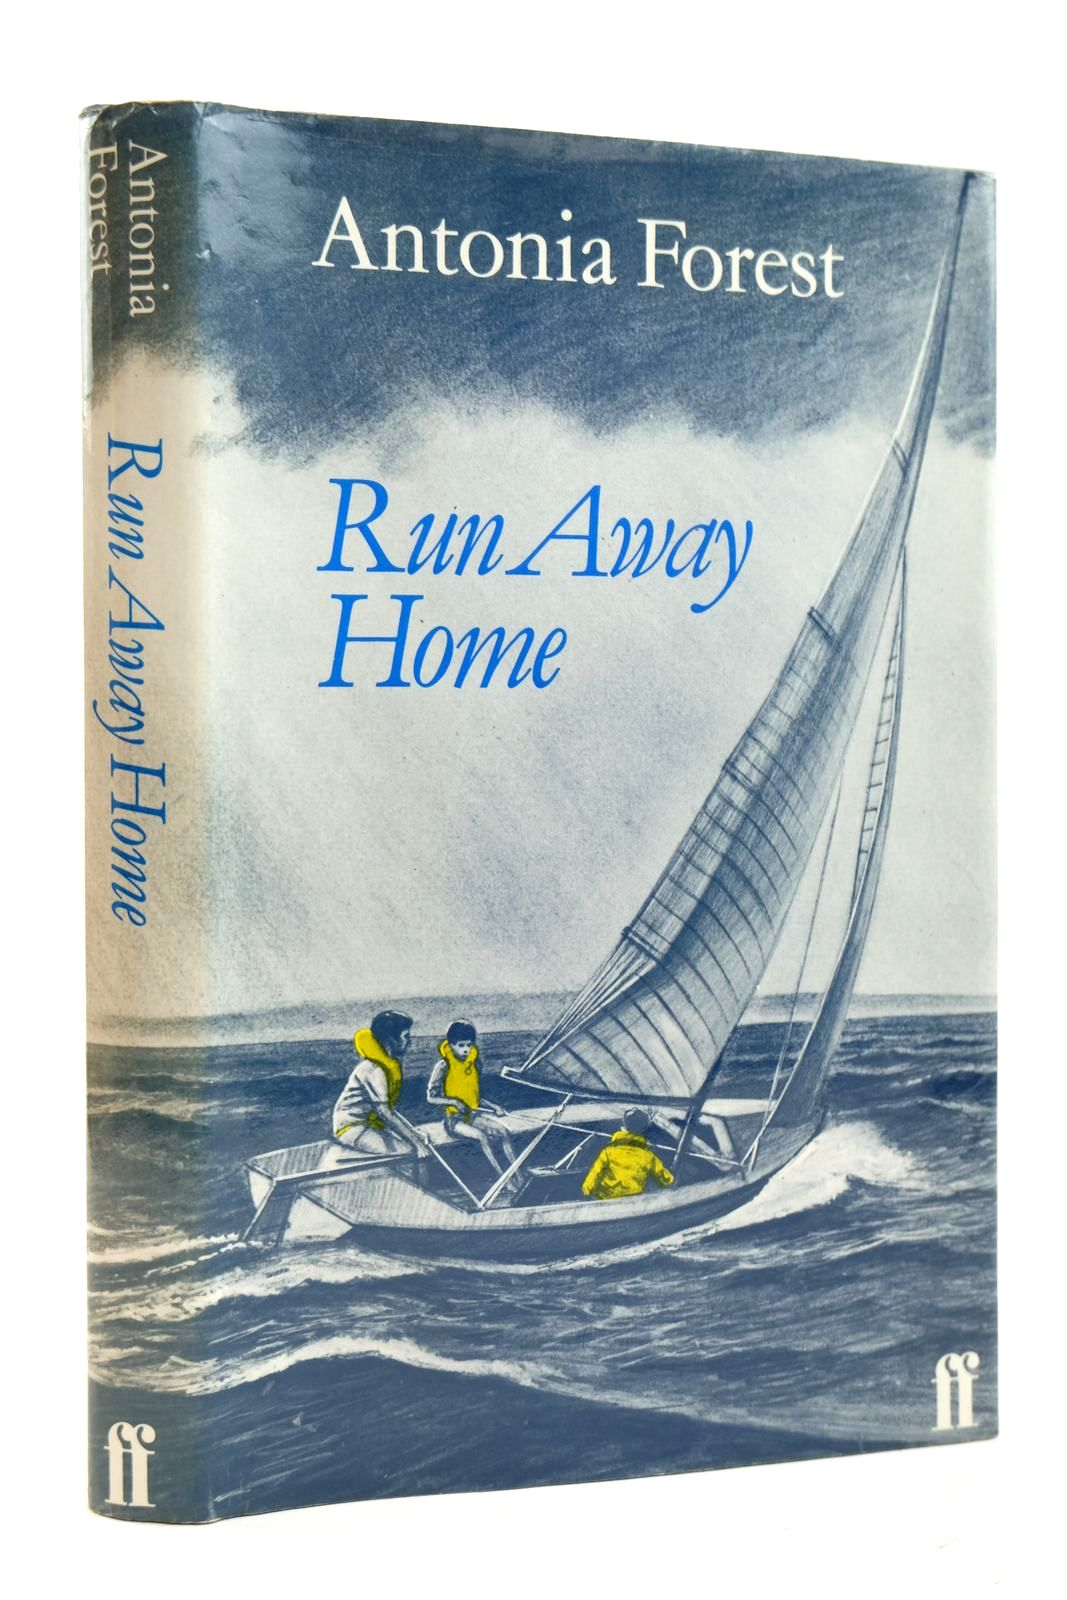 Photo of RUN AWAY HOME- Stock Number: 2131856